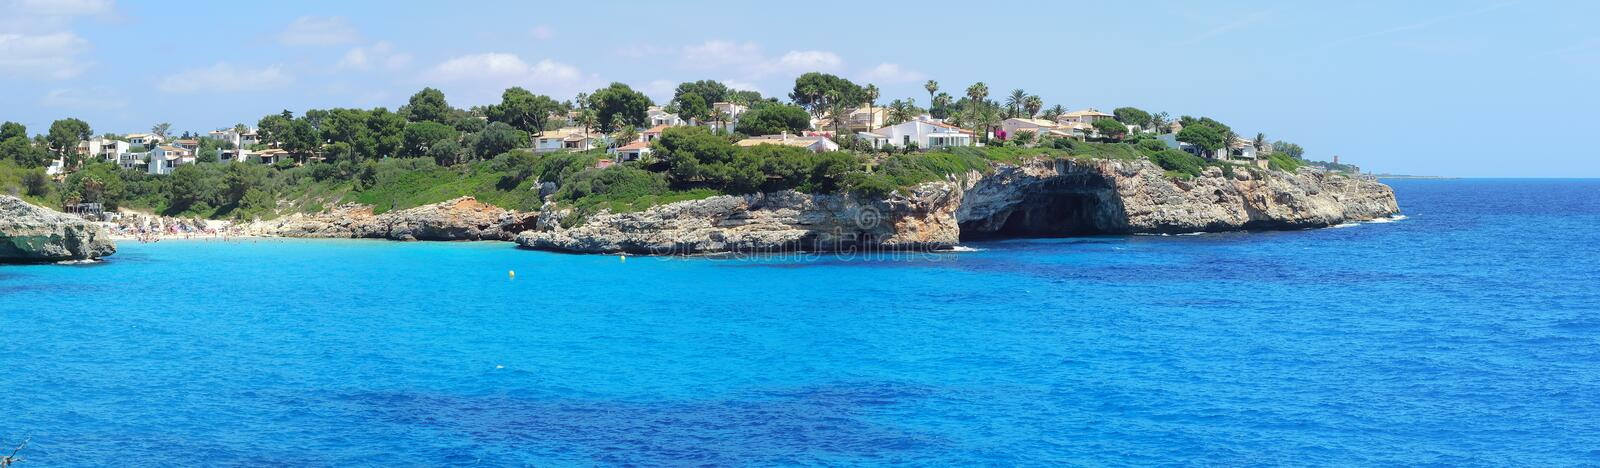 Landscape of the beautiful bay of Cala Anguila with a wonderful turquoise sea, Porto Cristo, Majorca, Spain. Summer time royalty free stock image